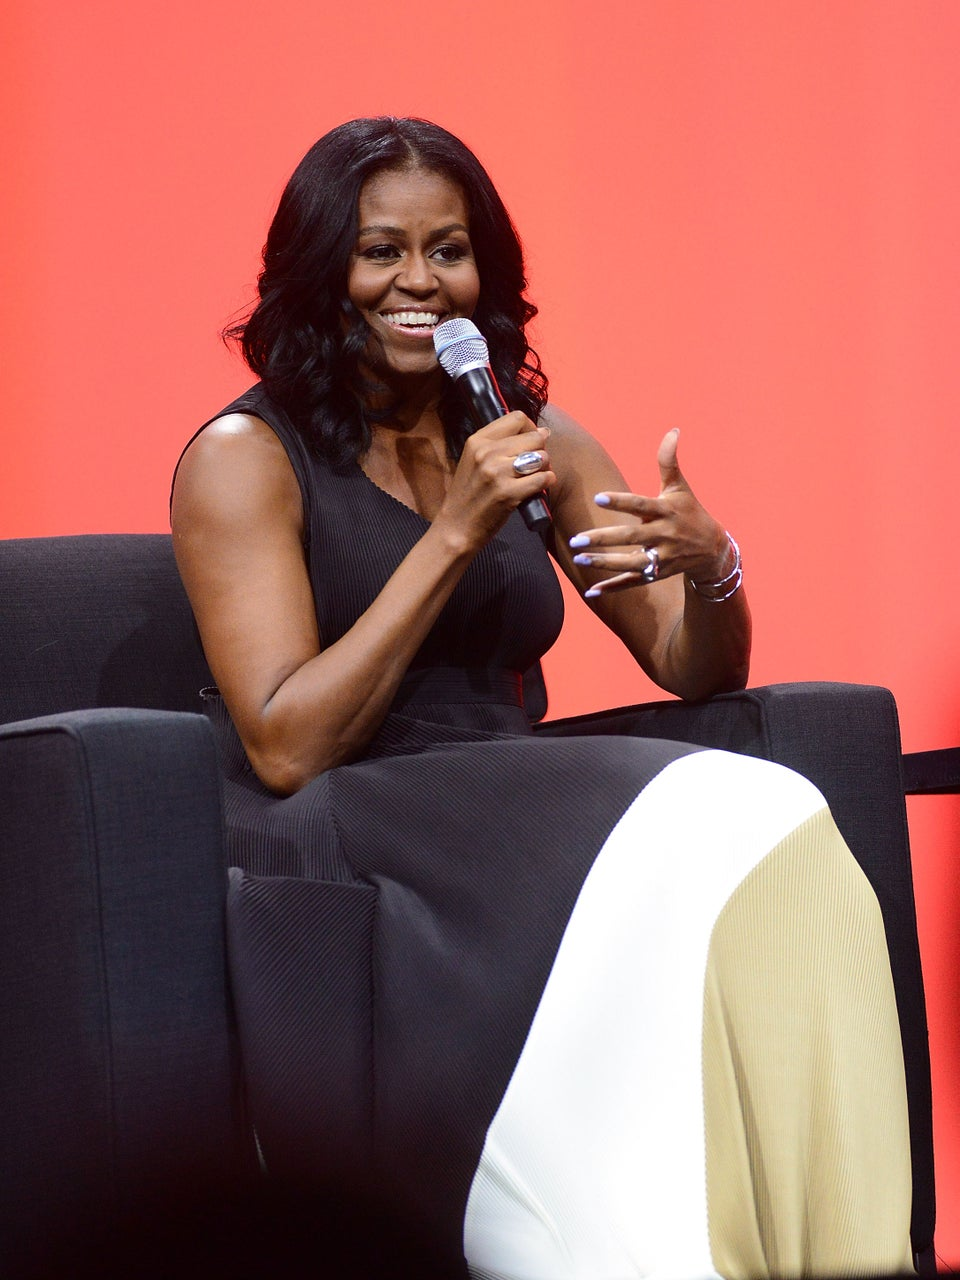 Michelle Obama Says She Won't Run For Office: 'I Wouldn't Ask My Children To Do This Again'